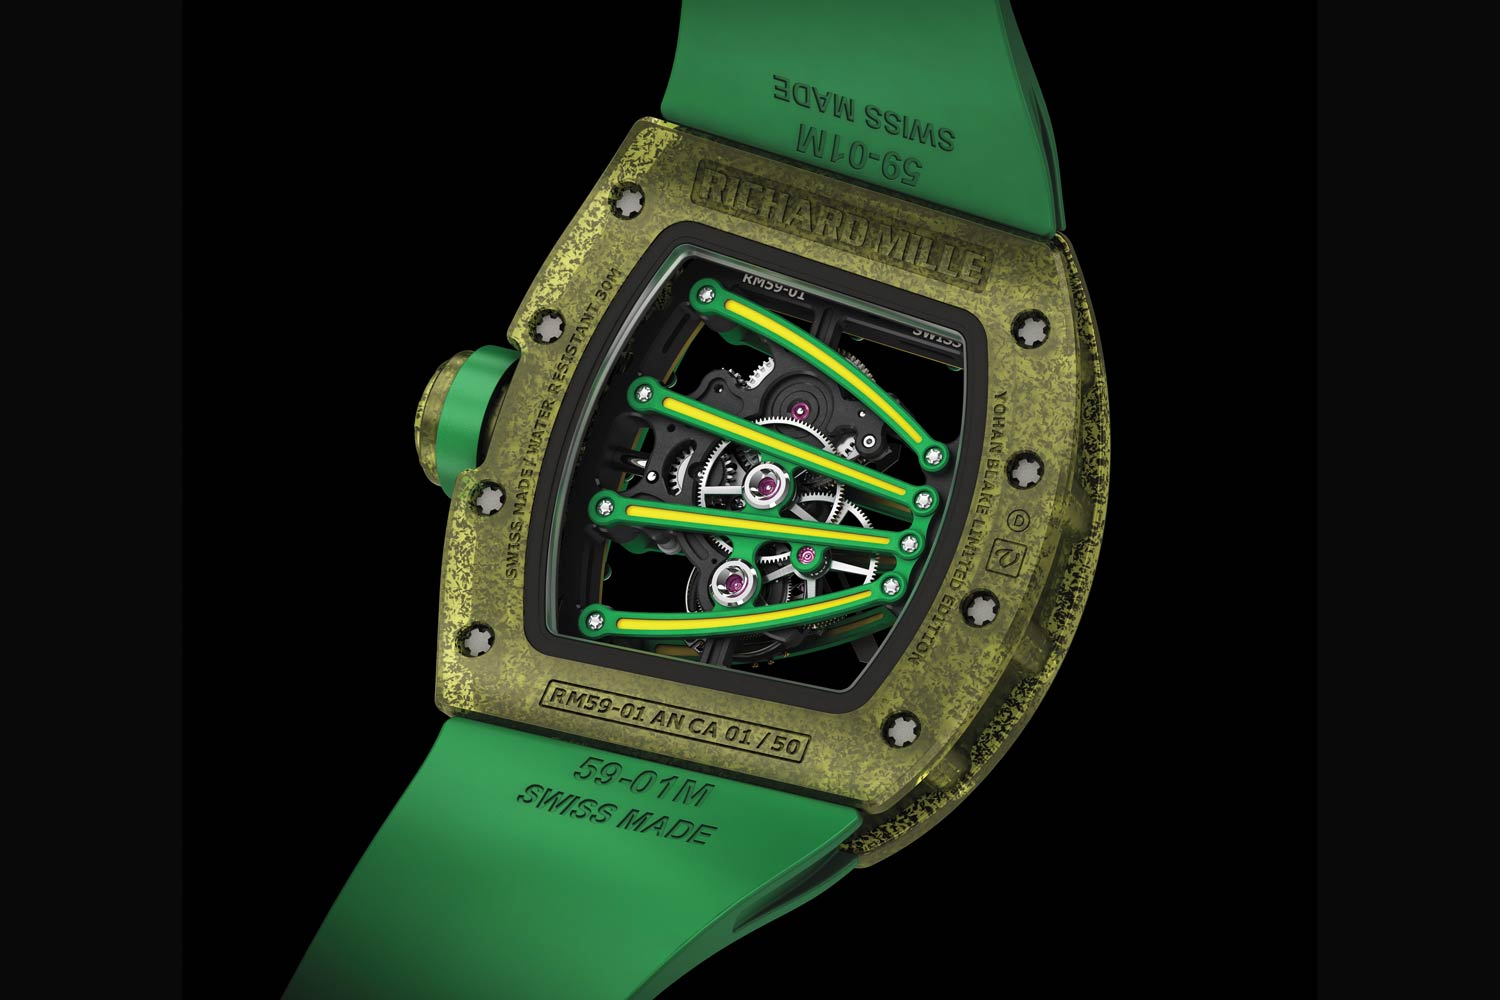 """RM 59-01 Tourbillon Yohan Blake, developed by Richard Mille in partnership with Yohan Blake, featuring dramatic bridges across the movement that evoke the claws of """"The Beast""""!"""